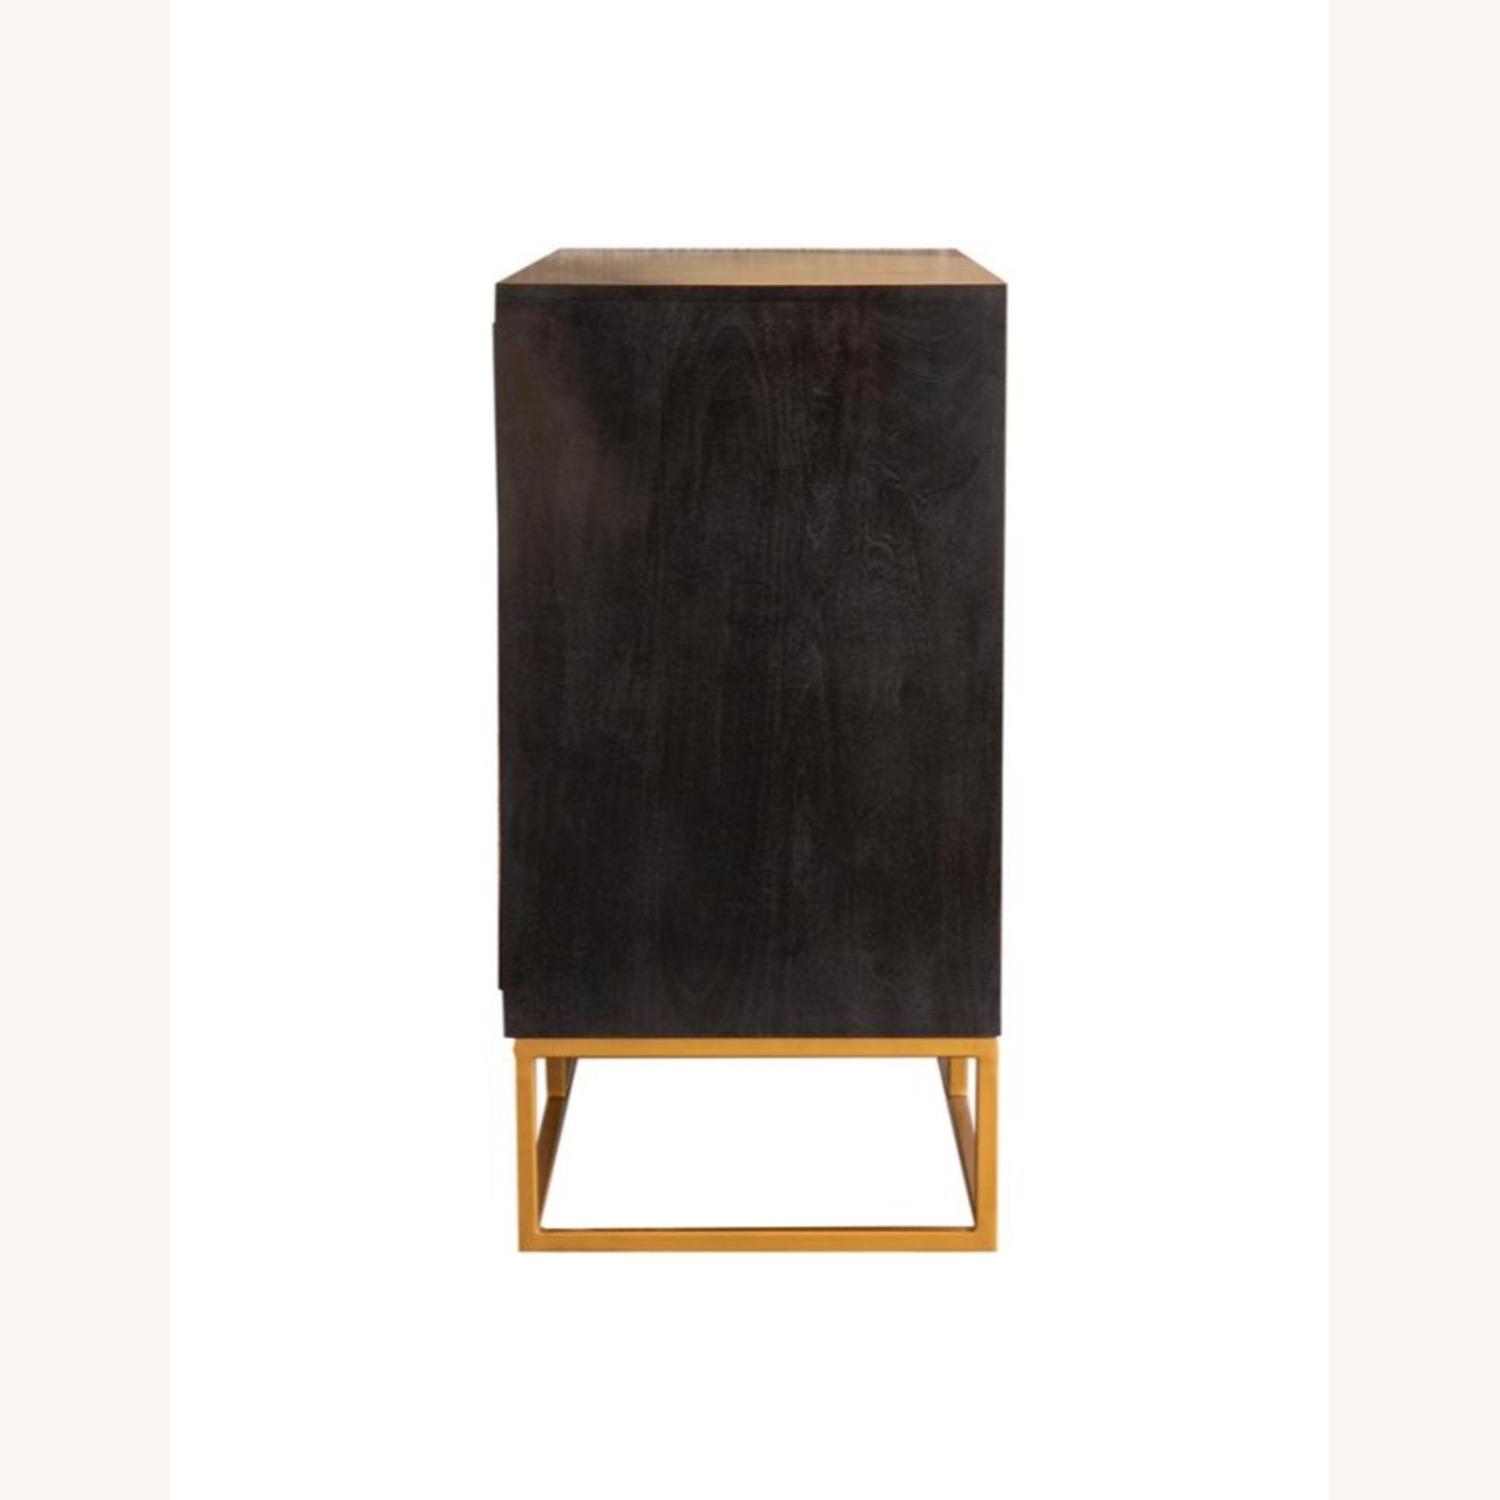 Accent Cabinet In Black Walnut & Gold Finish - image-1